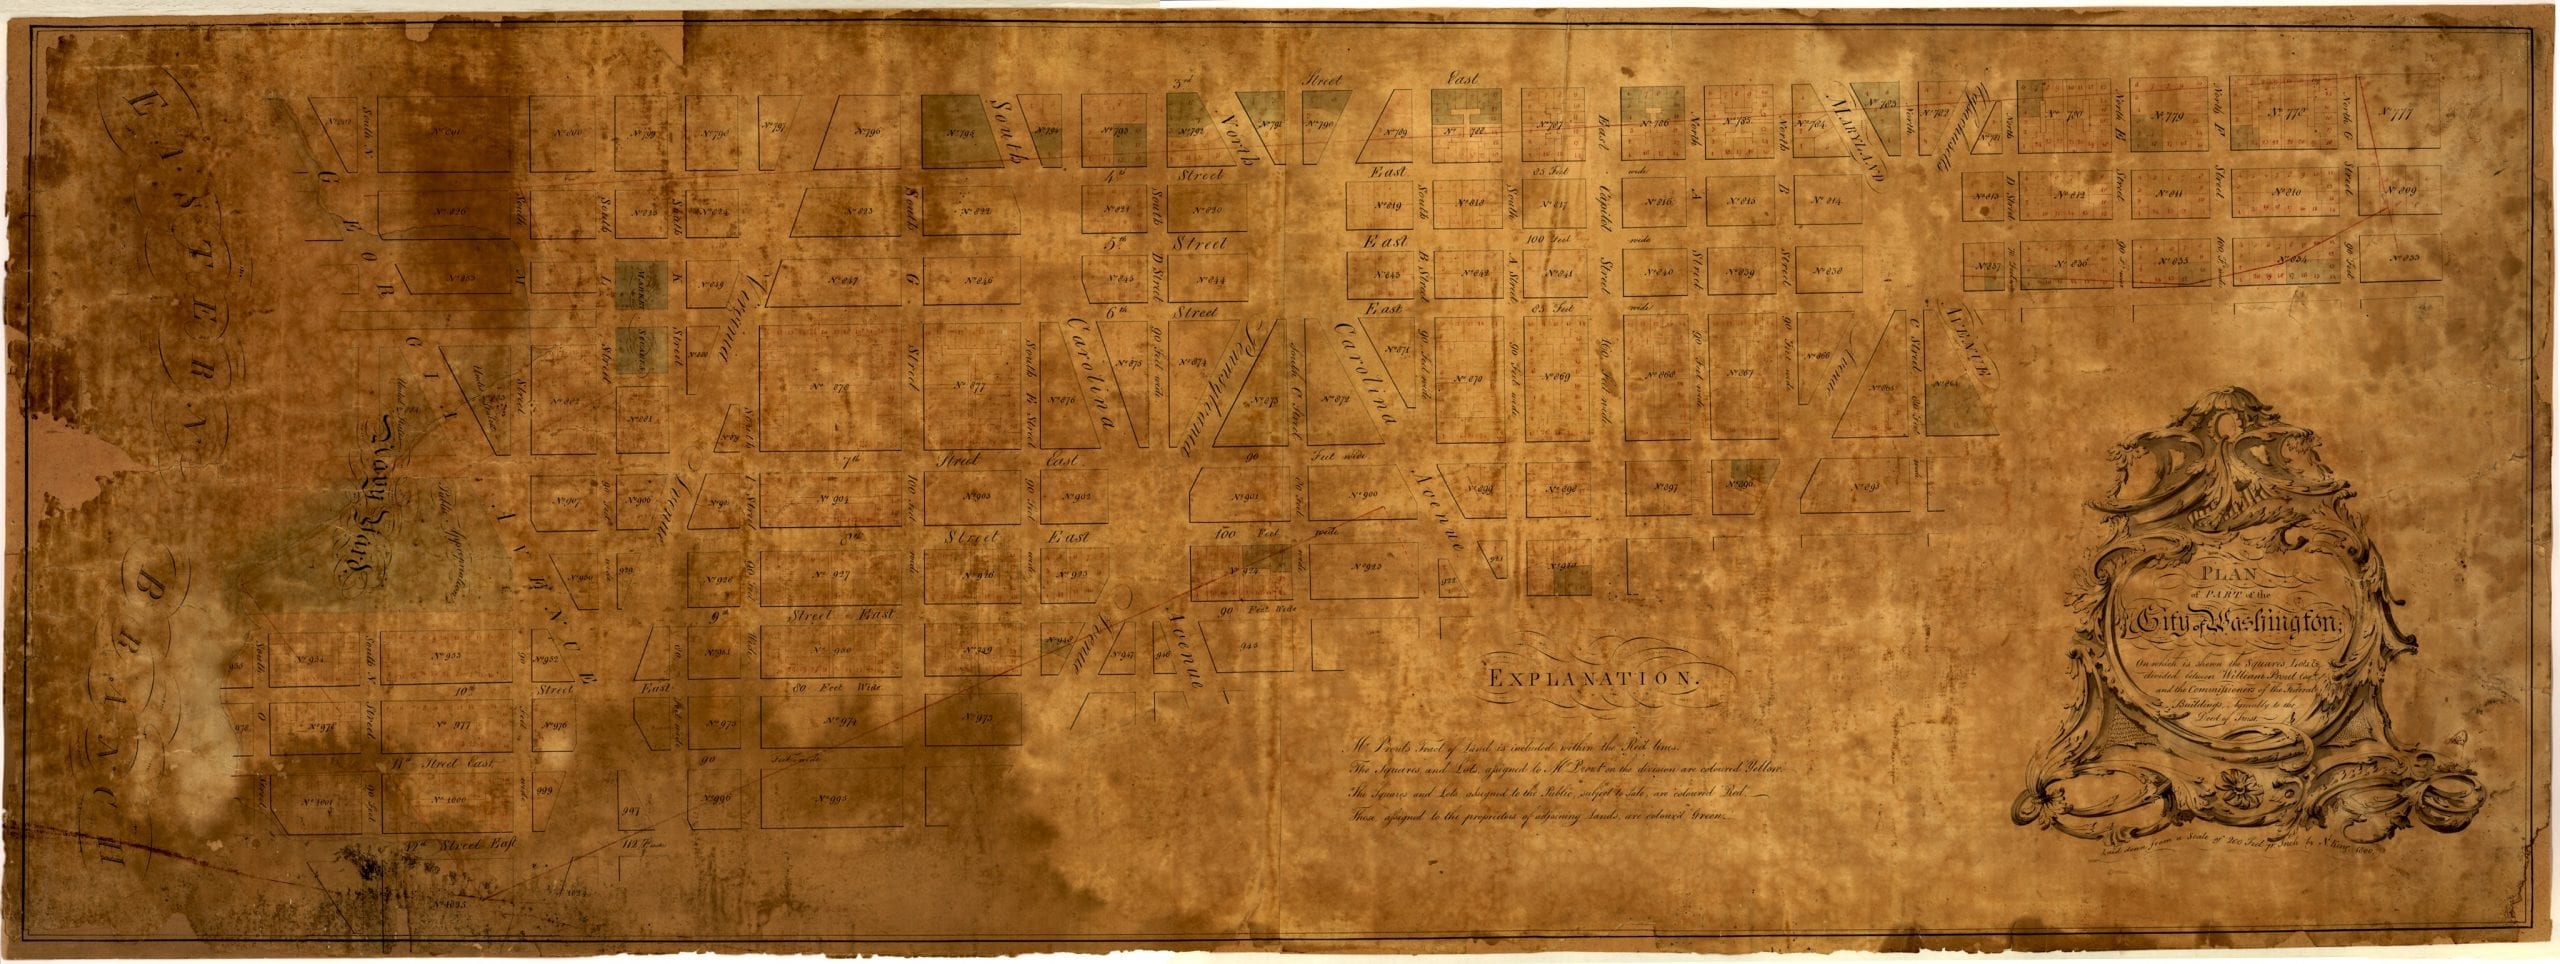 Plan of part of the city of Washington : on which is shewn the squares, lots, &c., divided between William Prout Esq'r and the Commissioners of the Federal Buildings, agreeably to the deed of trust / laid down from a scale of 200 feet pr. inch by N. King, 1800.